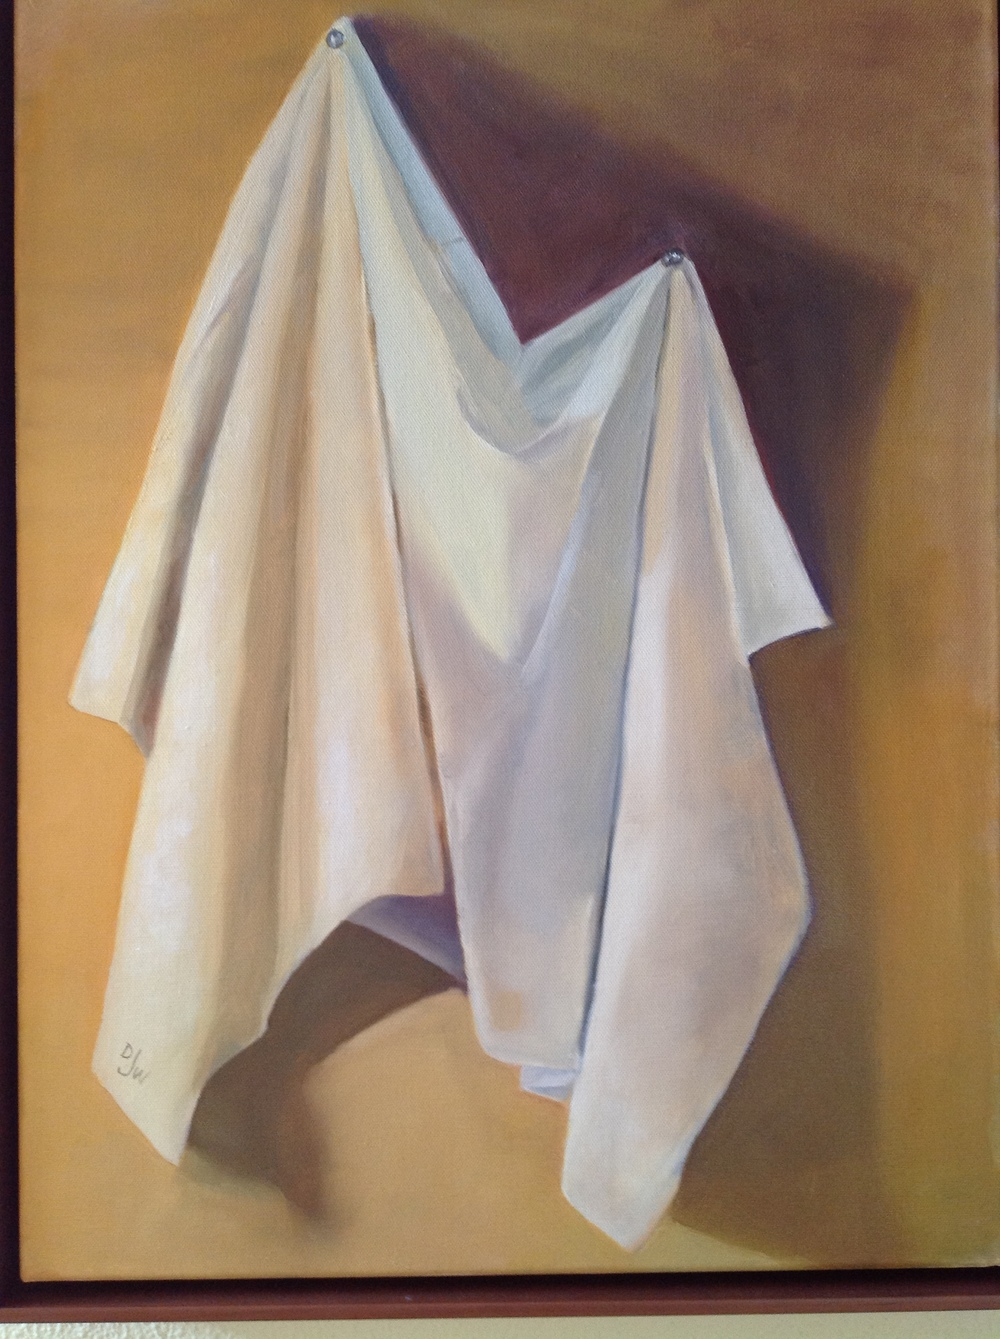 Study of White Cloth